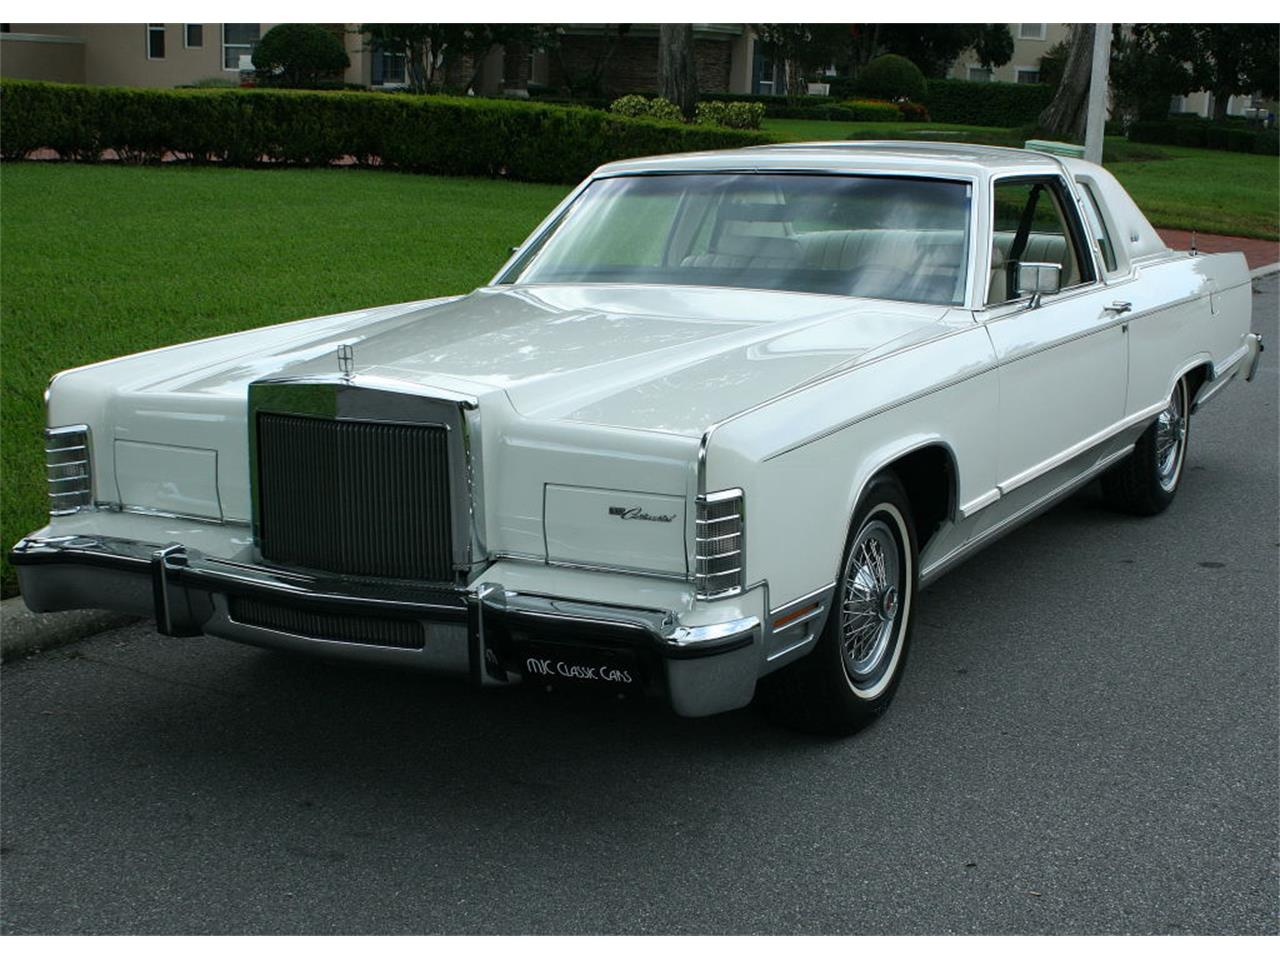 Large Picture of '79 Lincoln Town Car located in lakeland Florida - $17,500.00 Offered by MJC Classic Cars - LBZD